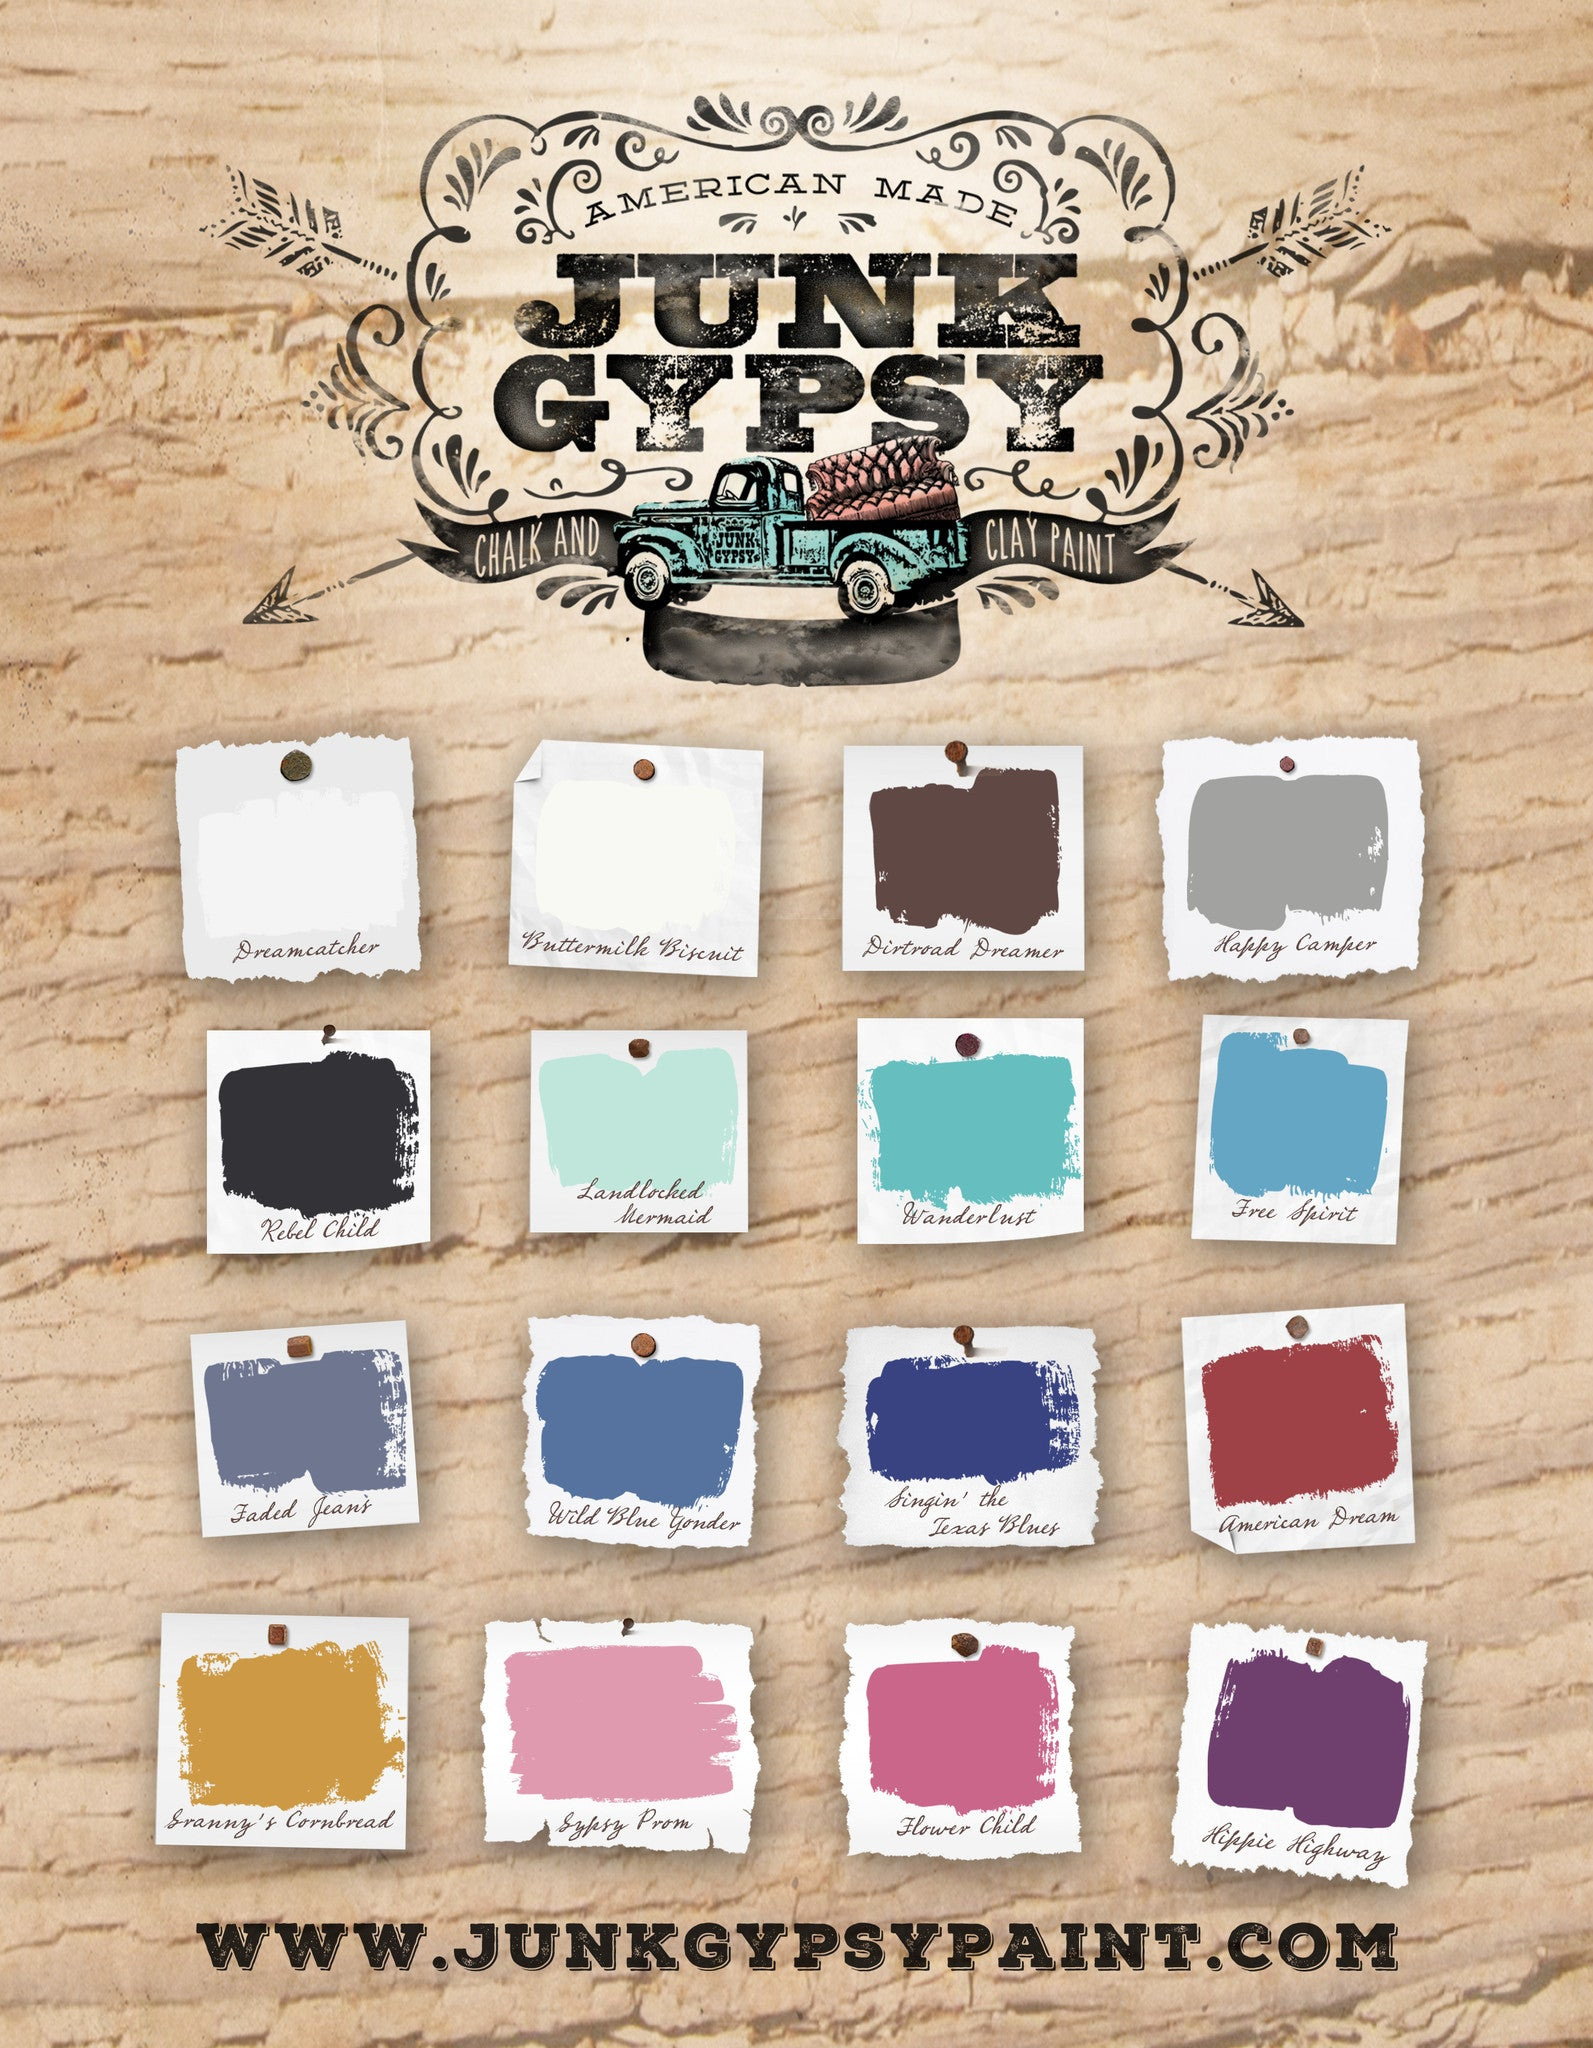 Junk Gypsy Paint - Faded Jeans - 32oz - Chalk and Clay Paint